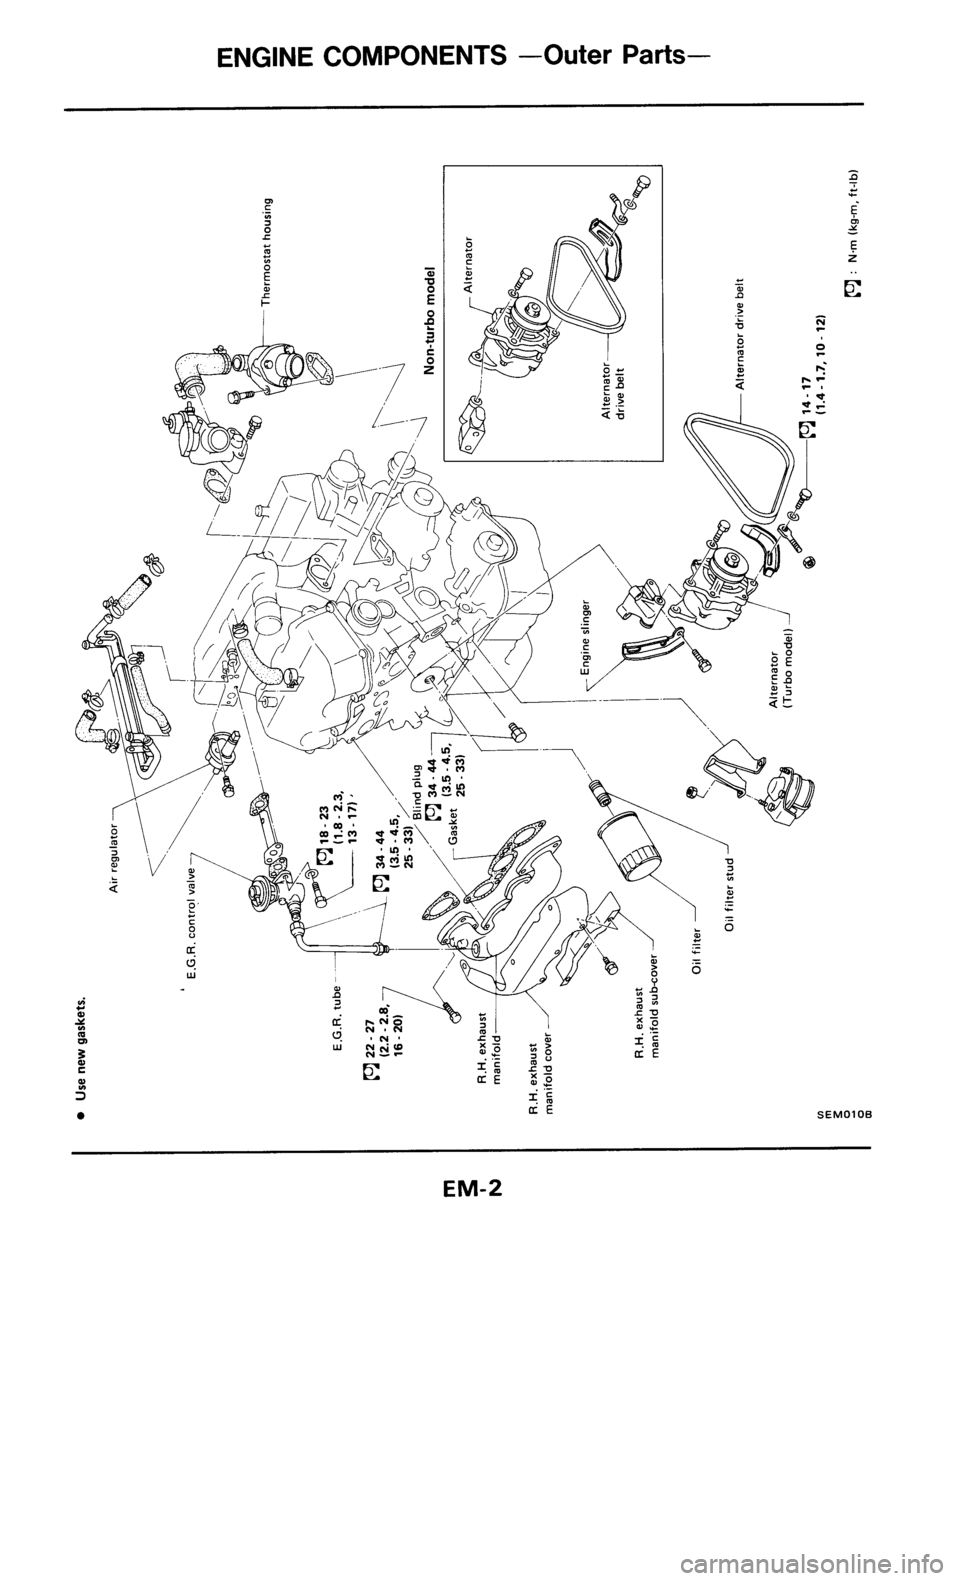 Nissan zx z engine mechanical workshop manual